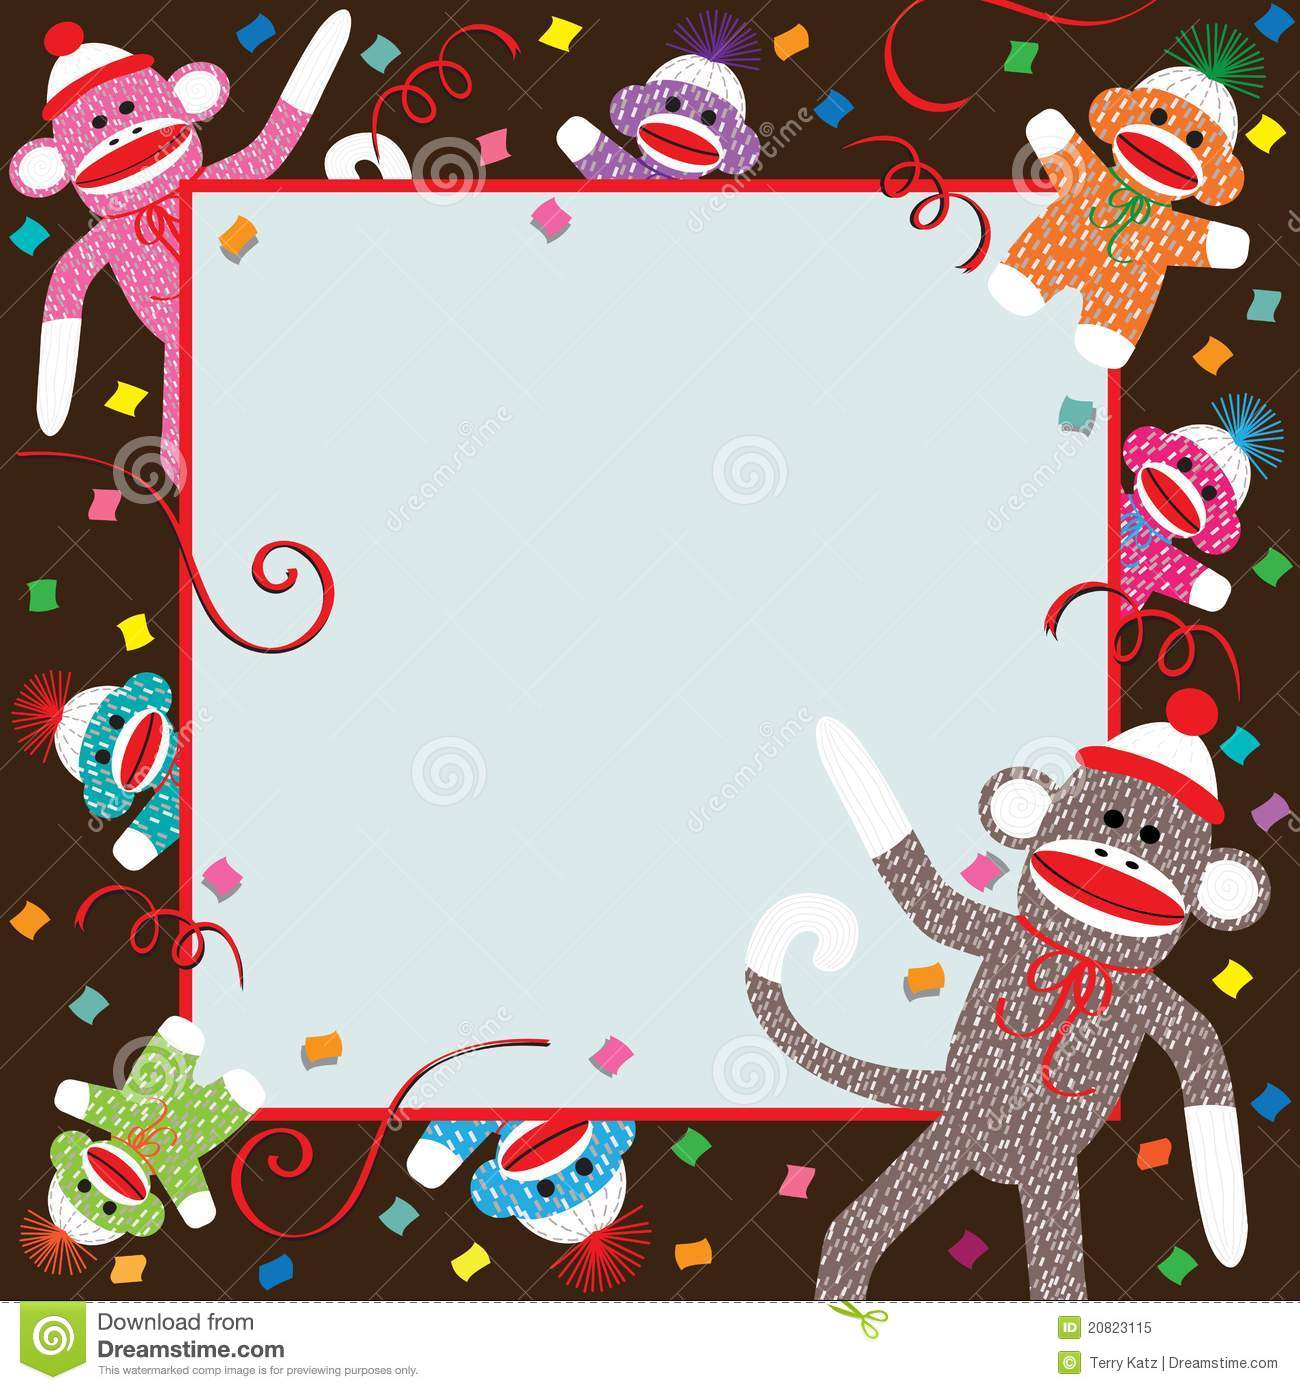 sock monkey birthday invitation template ; sock-monkey-party-invitation-20823115